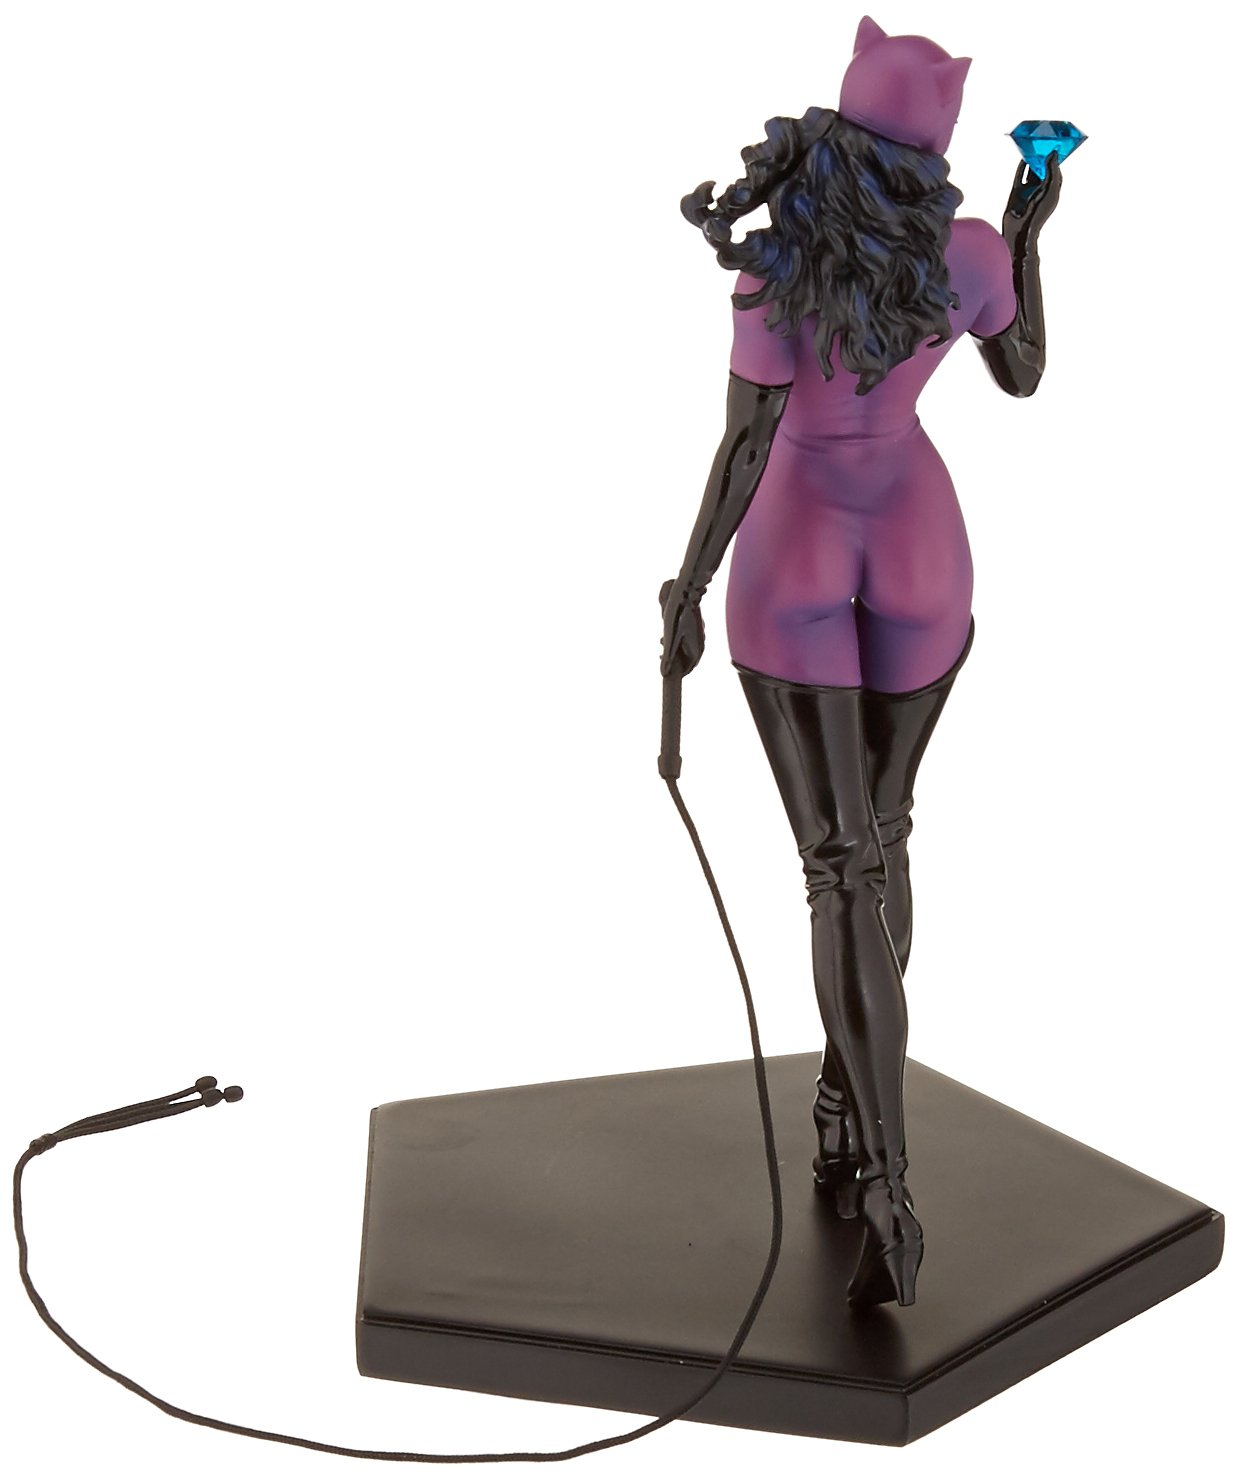 Ironstudios 1/10 Catwoman DC Comics Hand Painted Statue by Iron Studios (Image #2)